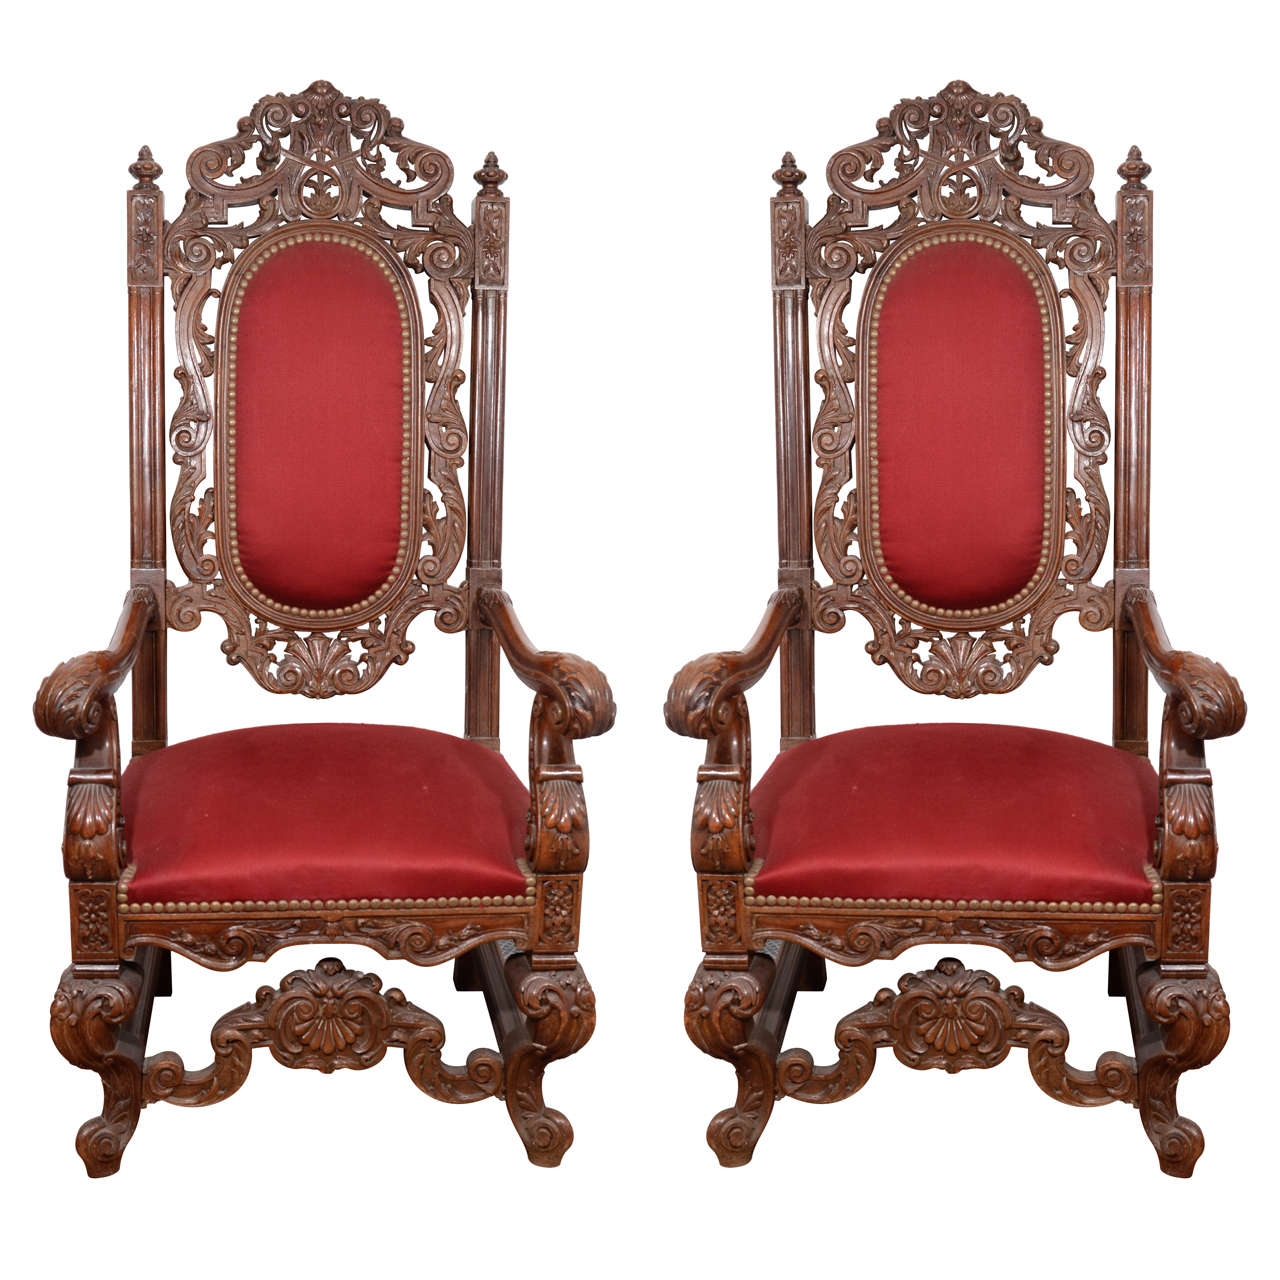 Chairs For Sale Antique Throne Chairs For Sale Antique Furniture